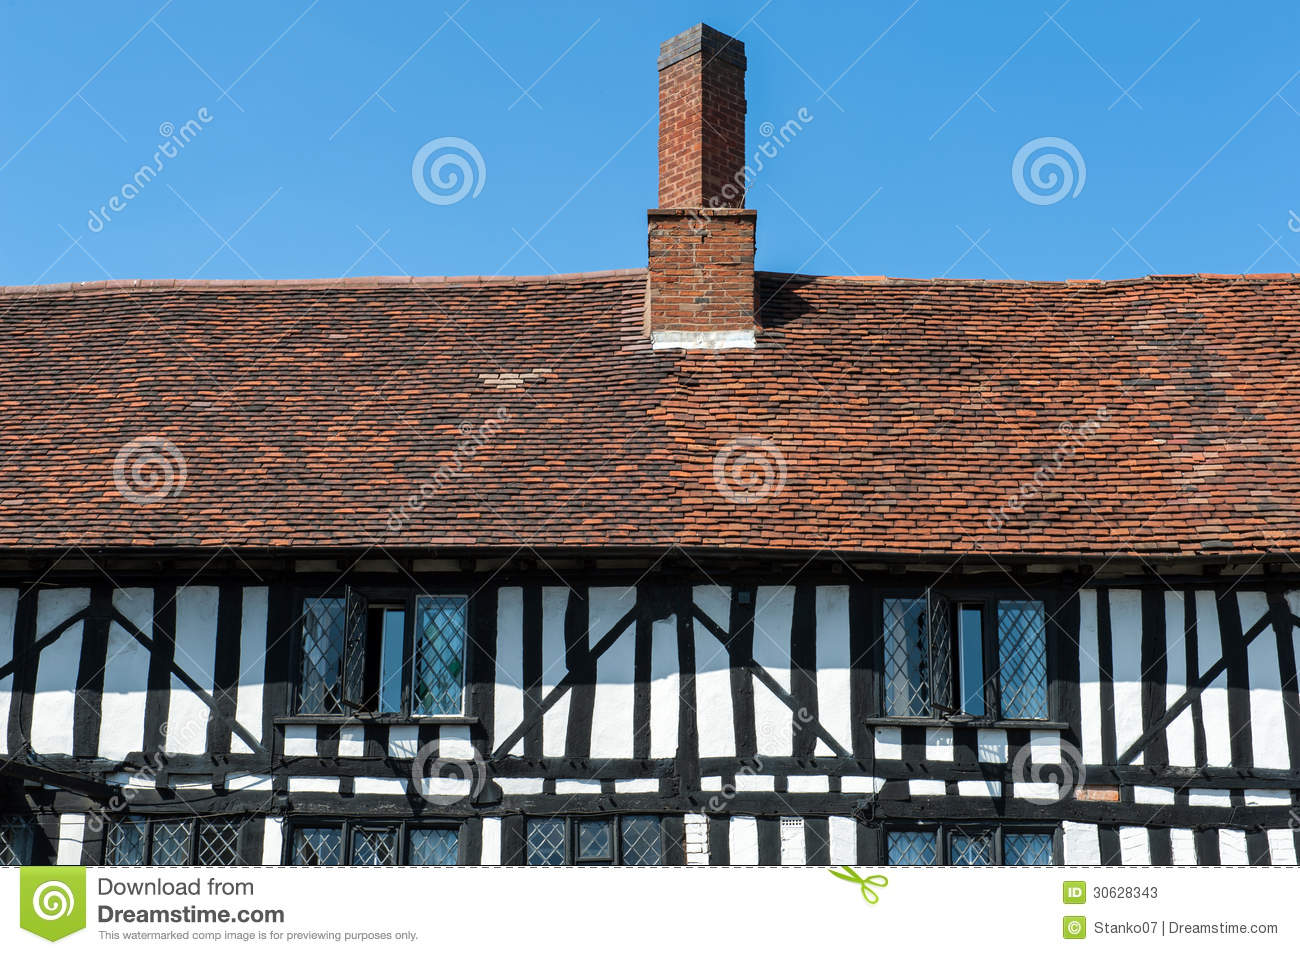 Tudor House Details Stock Photos Image 30628343